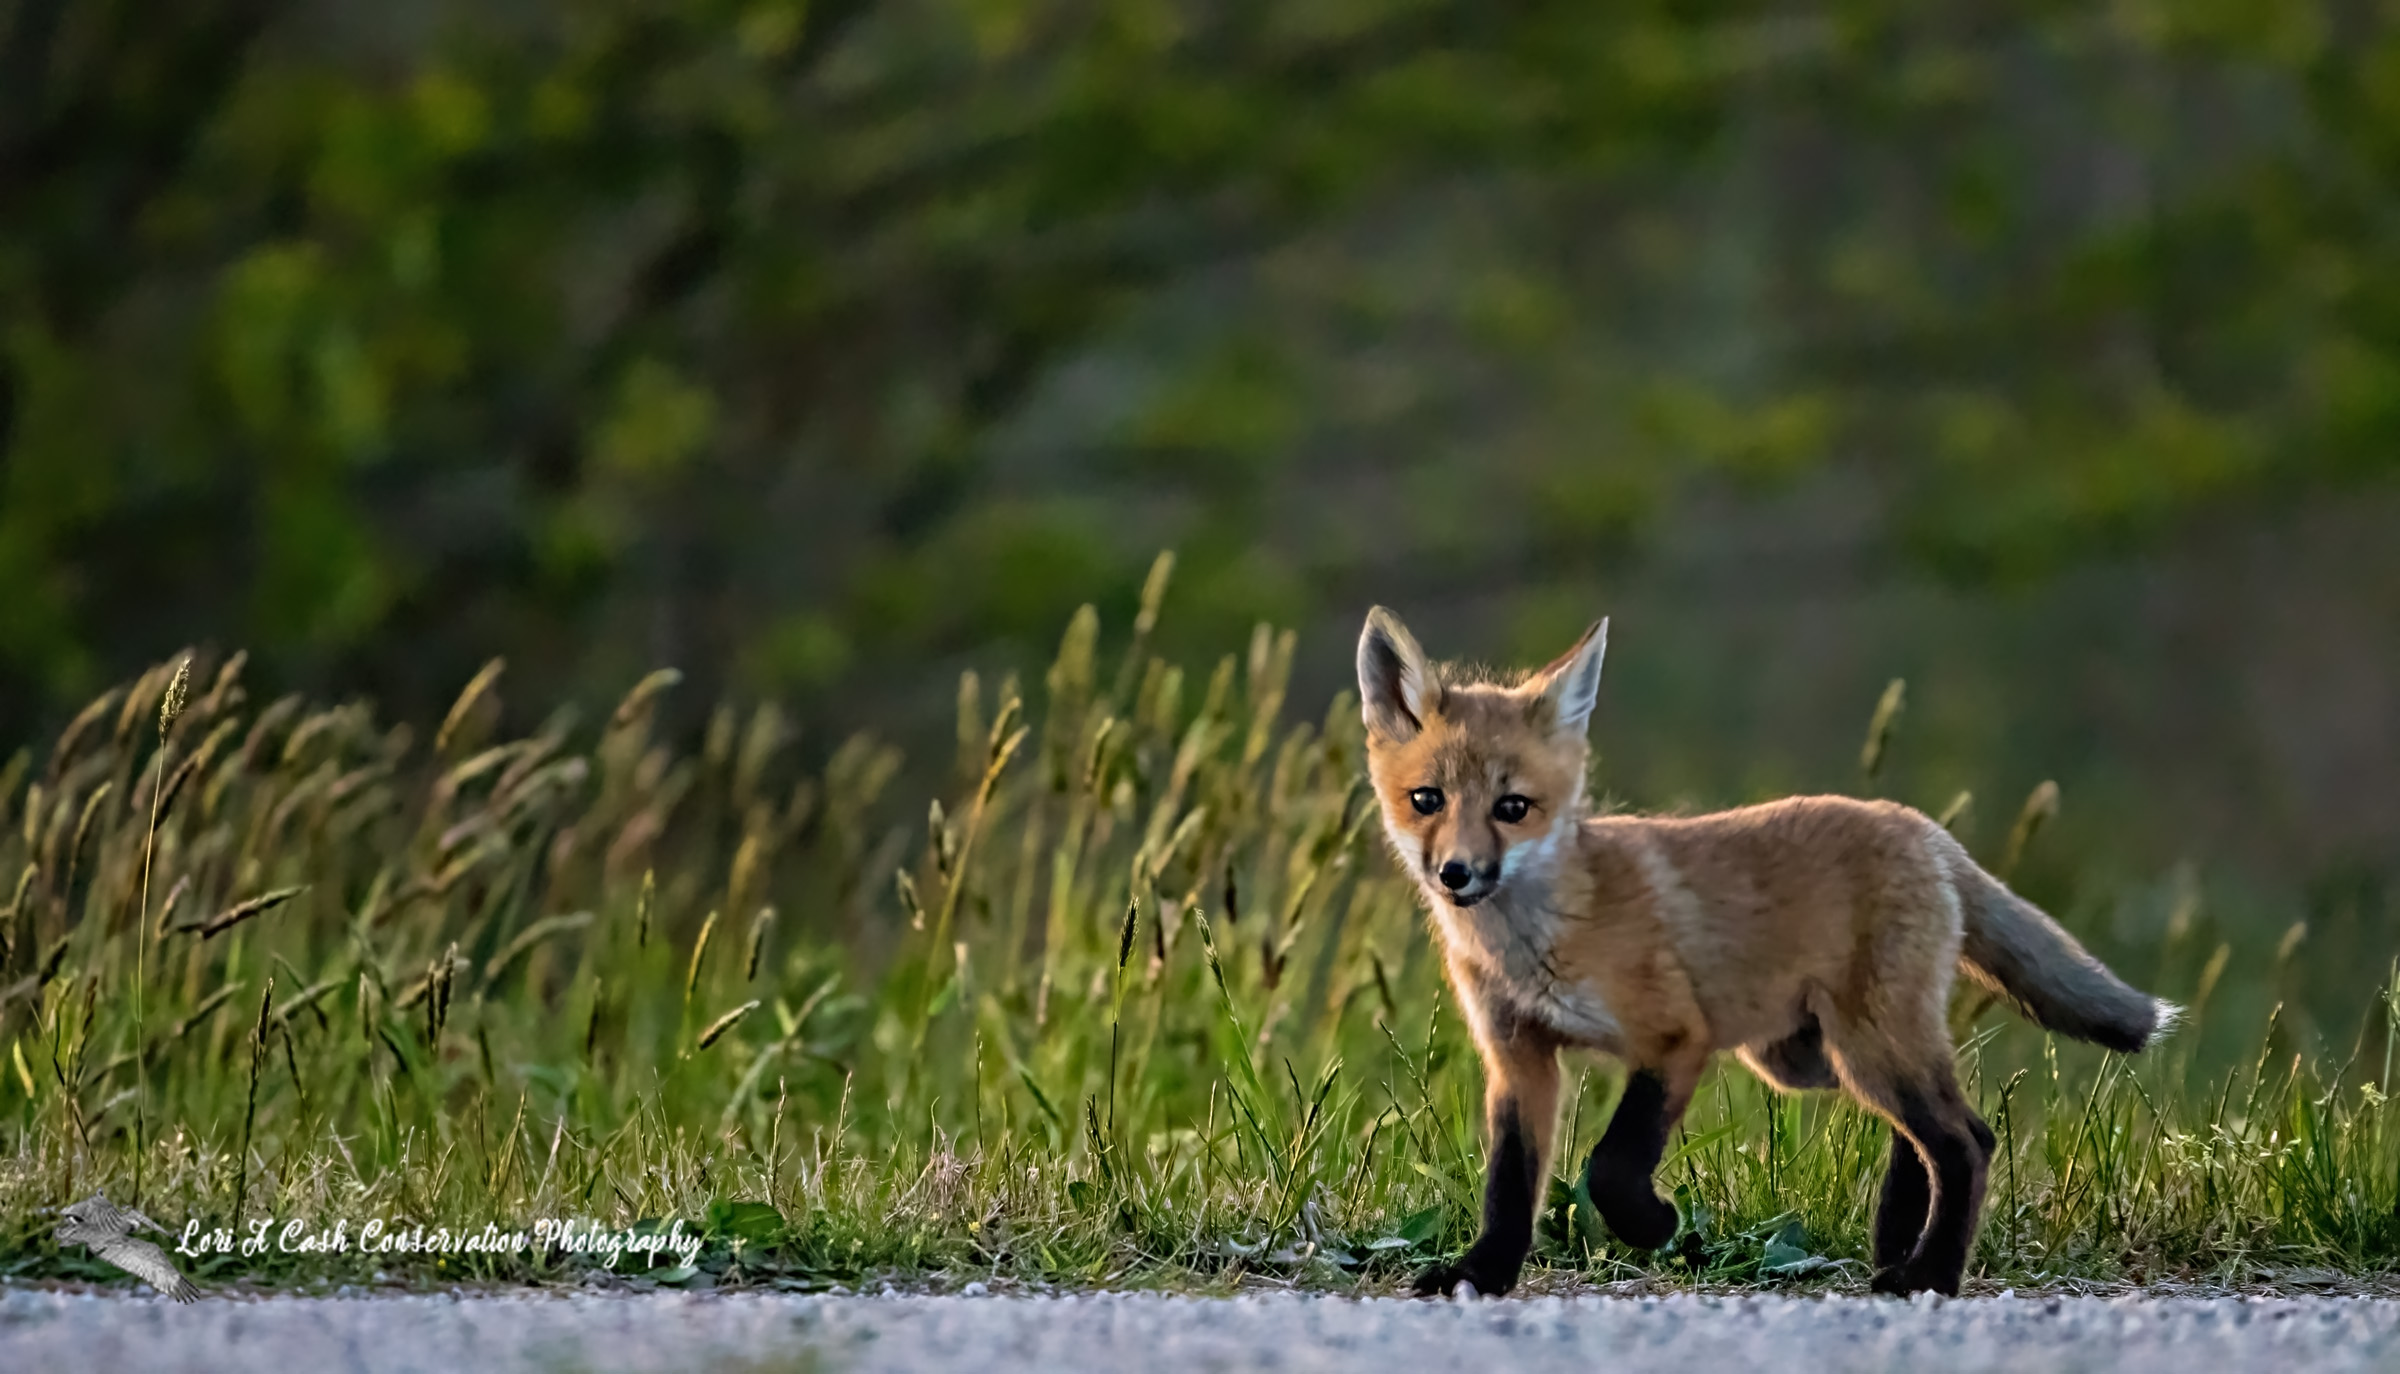 Red fox pup walking along the edge of grass near its den in the late evening at Hampton, Virginia.